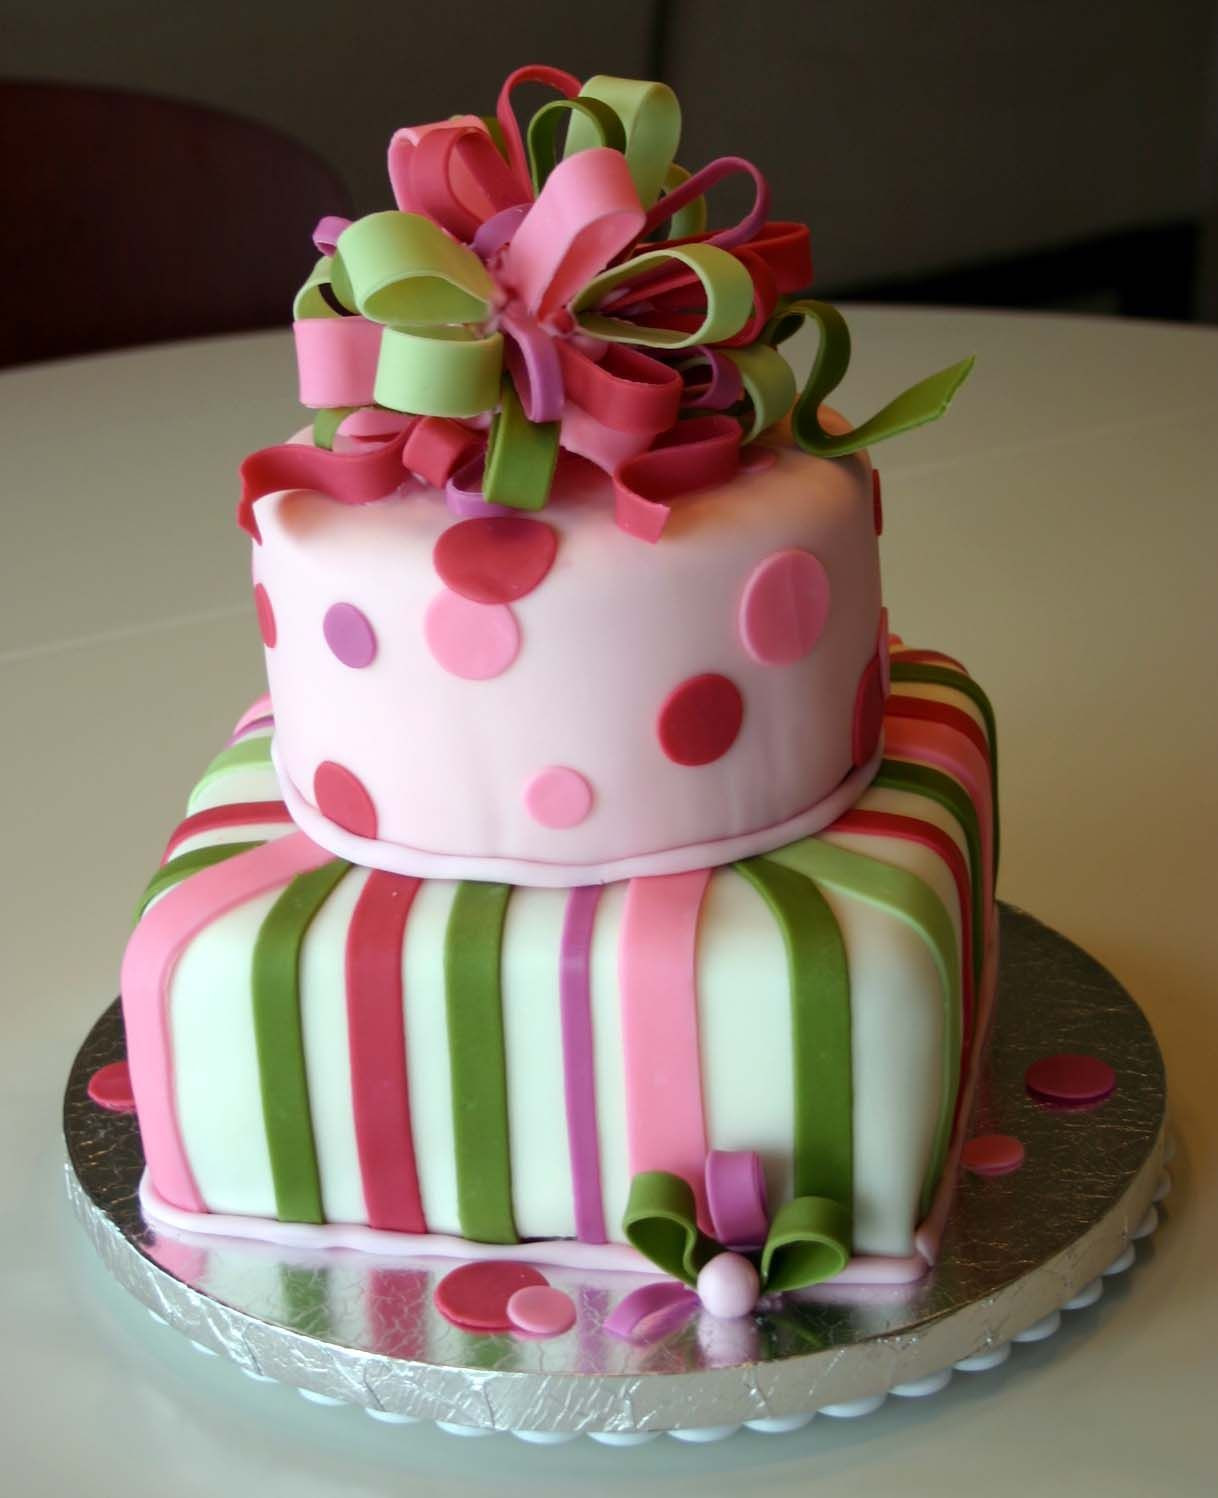 Best ideas about 2 Tier Birthday Cake . Save or Pin Birthday Present Cake 2 Tier — s Now.